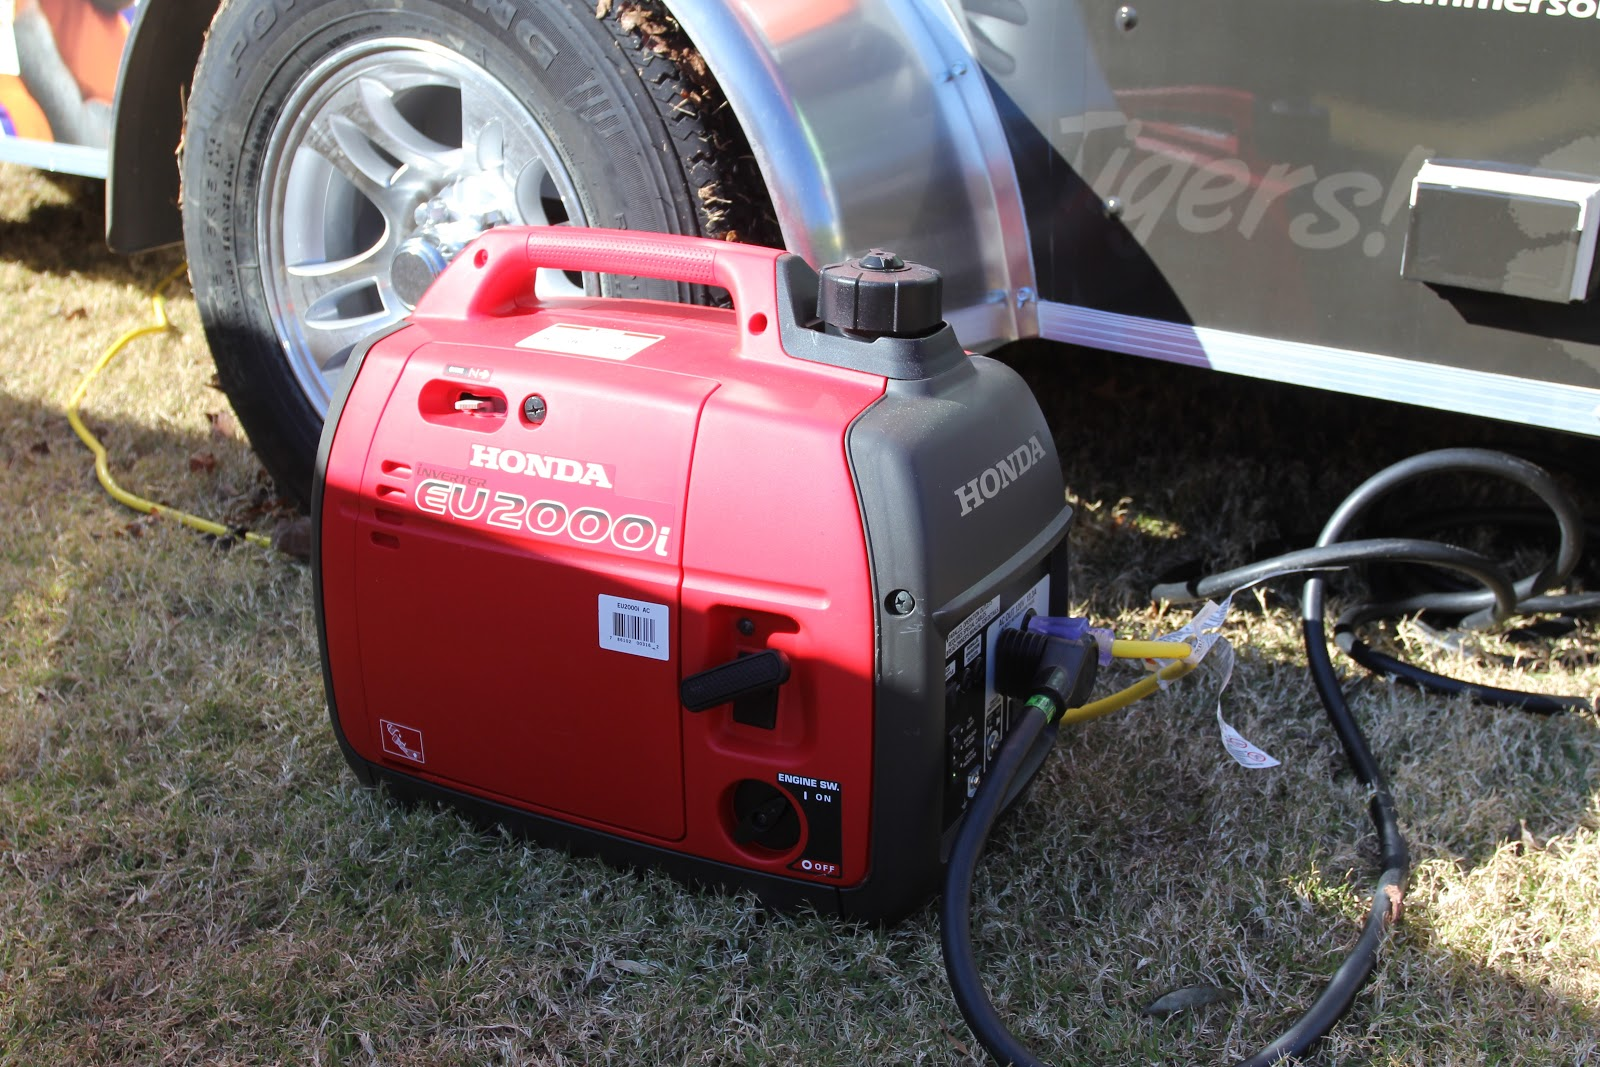 Cheryl's 2 Cents' Worth: Unequaled, Ultimate, Tailgate Trailer